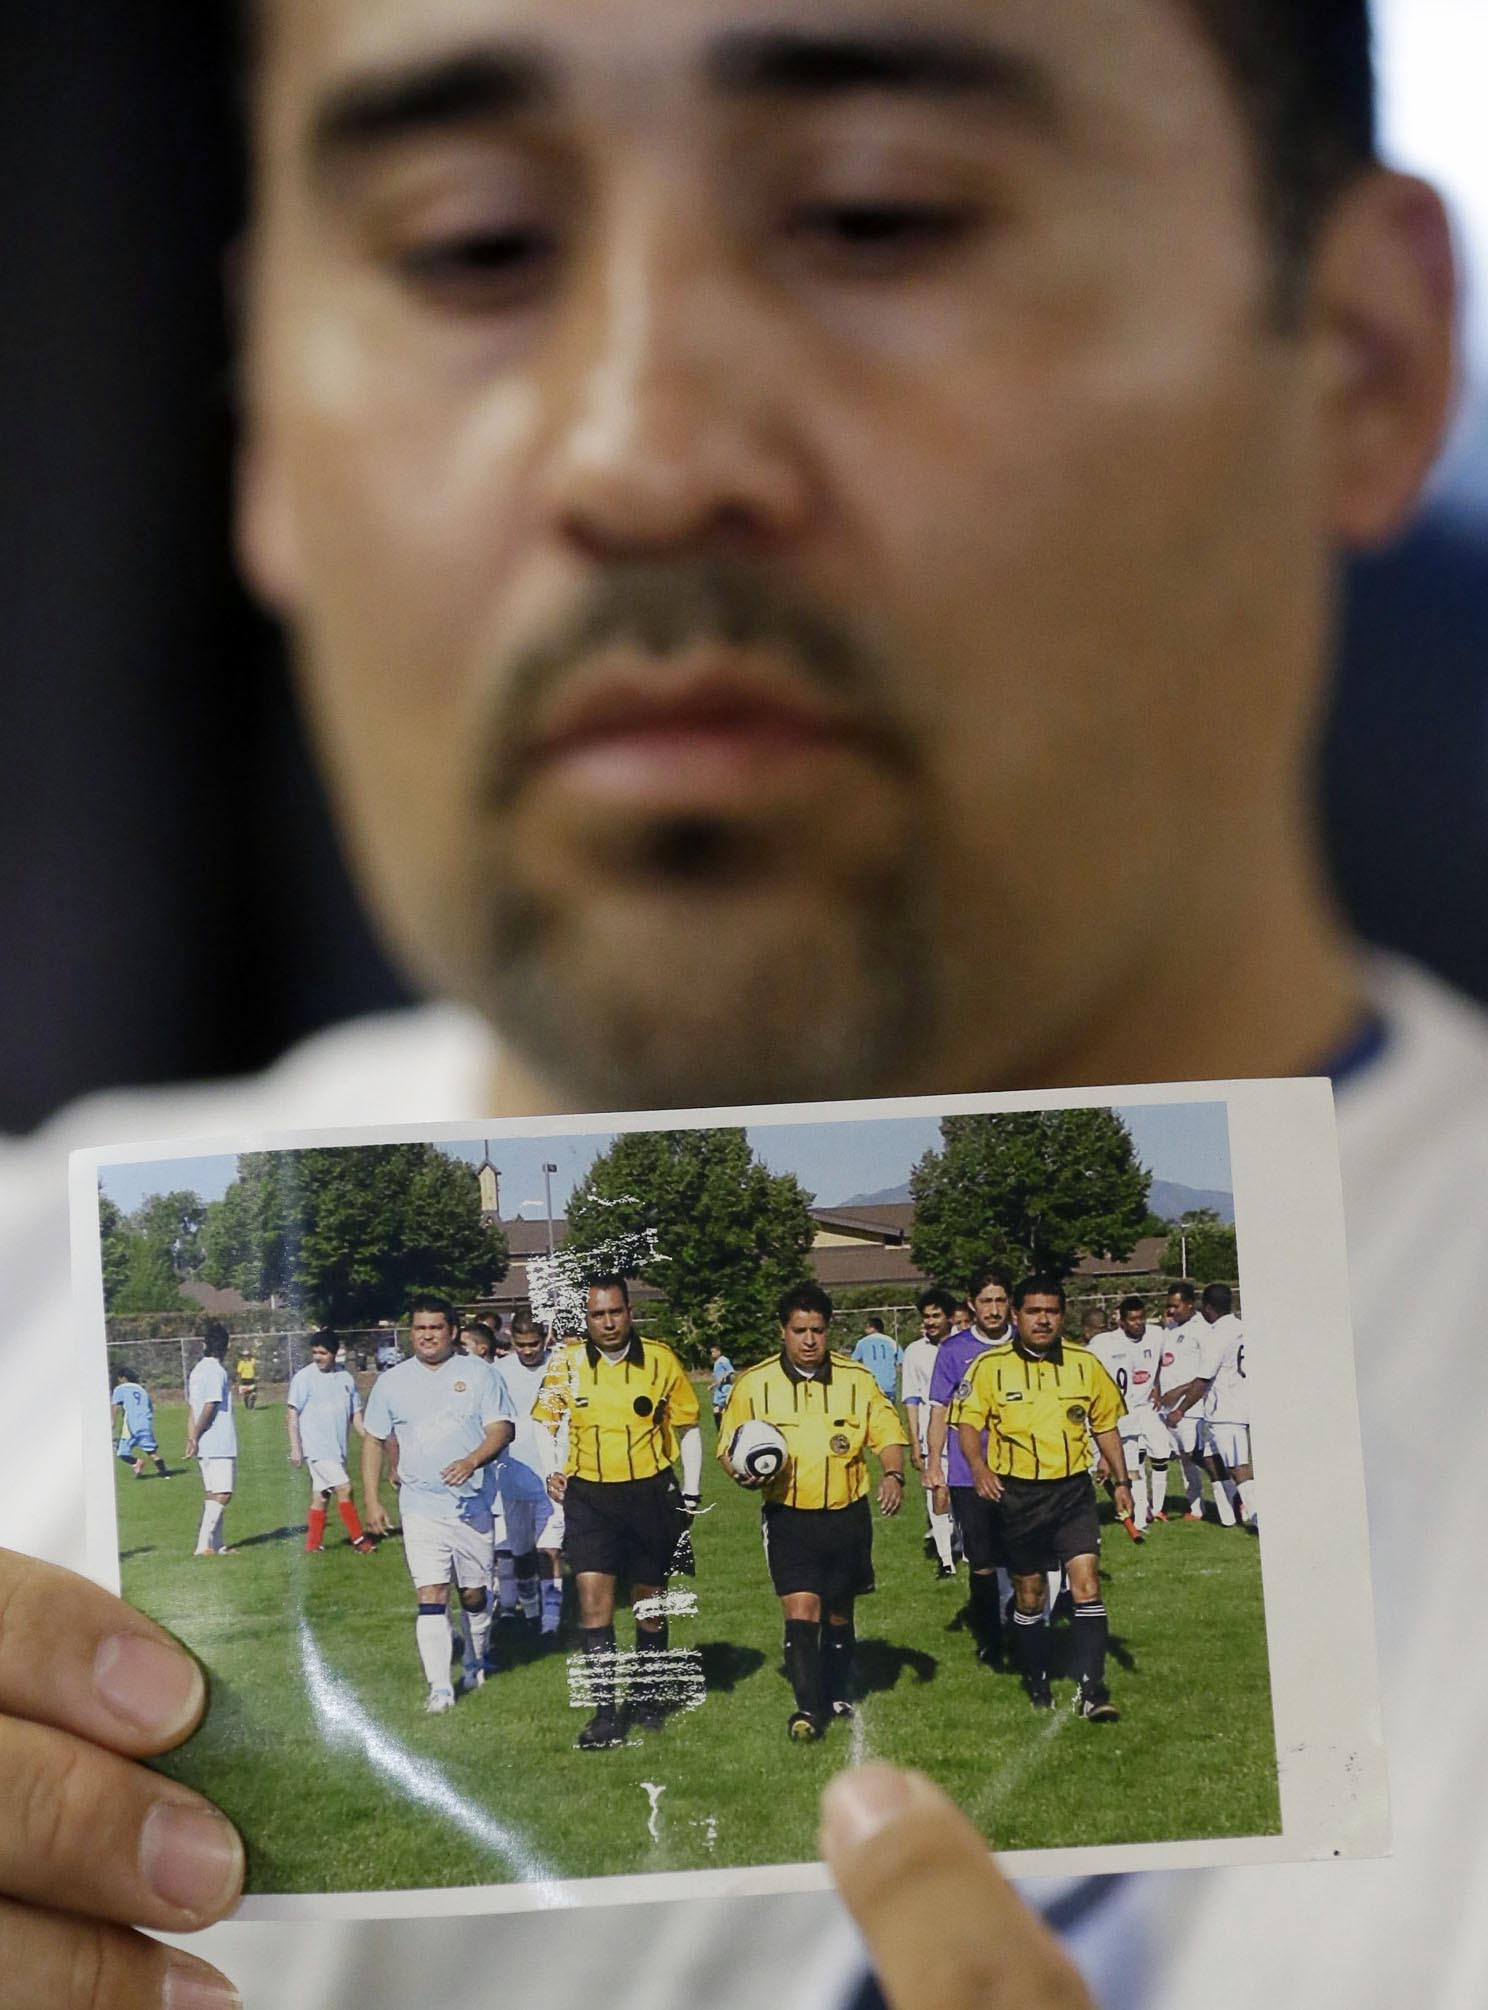 FILE - In this May 2, 2013 file photo, Jose Lopez points to a undated photo of Ricardo Portillo, center, his brother-in-law, following a news conference, at Intermountain Medical Center, in Murray, Utah. The attorney for a Utah teenager accused of killing a soccer referee with a single punch has acknowledged there is probable cause the teen committed the crime. The teenager's attorney, Monte Sleight, made the concession Friday, Aug. 2, 2013 in a private meeting with prosecutors and Juvenile Court Judge Kimberly Hornak, court records show. (AP Photo/Rick Bowmer, File)